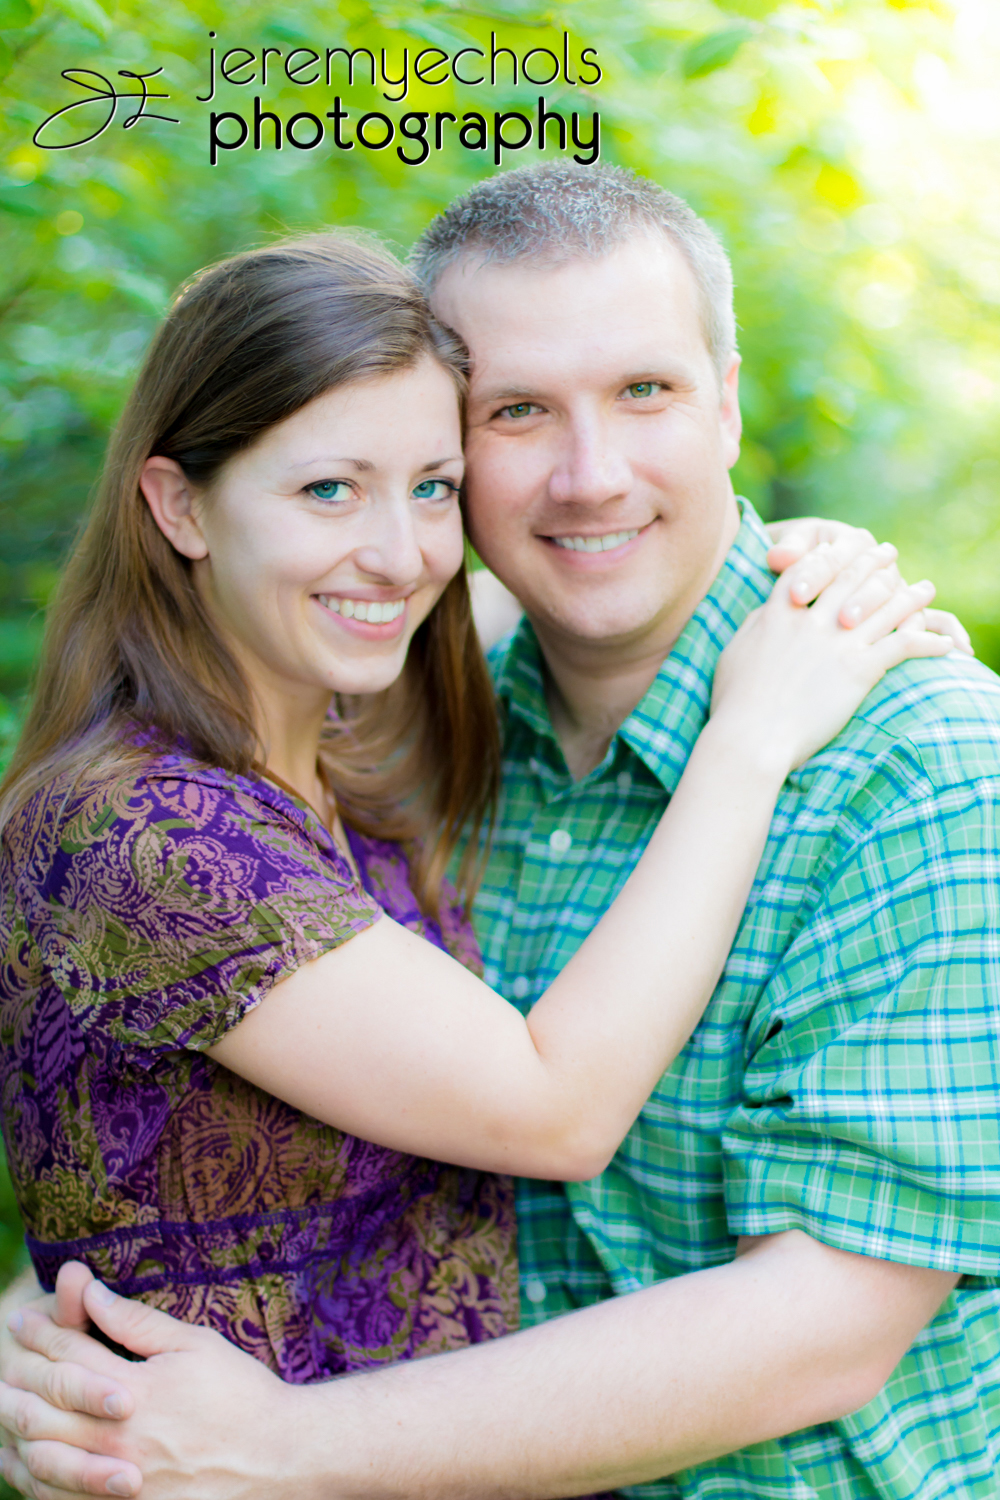 Alan-Amberlyn-Seattle-Engagement-Photography-141-photoshopped.jpg